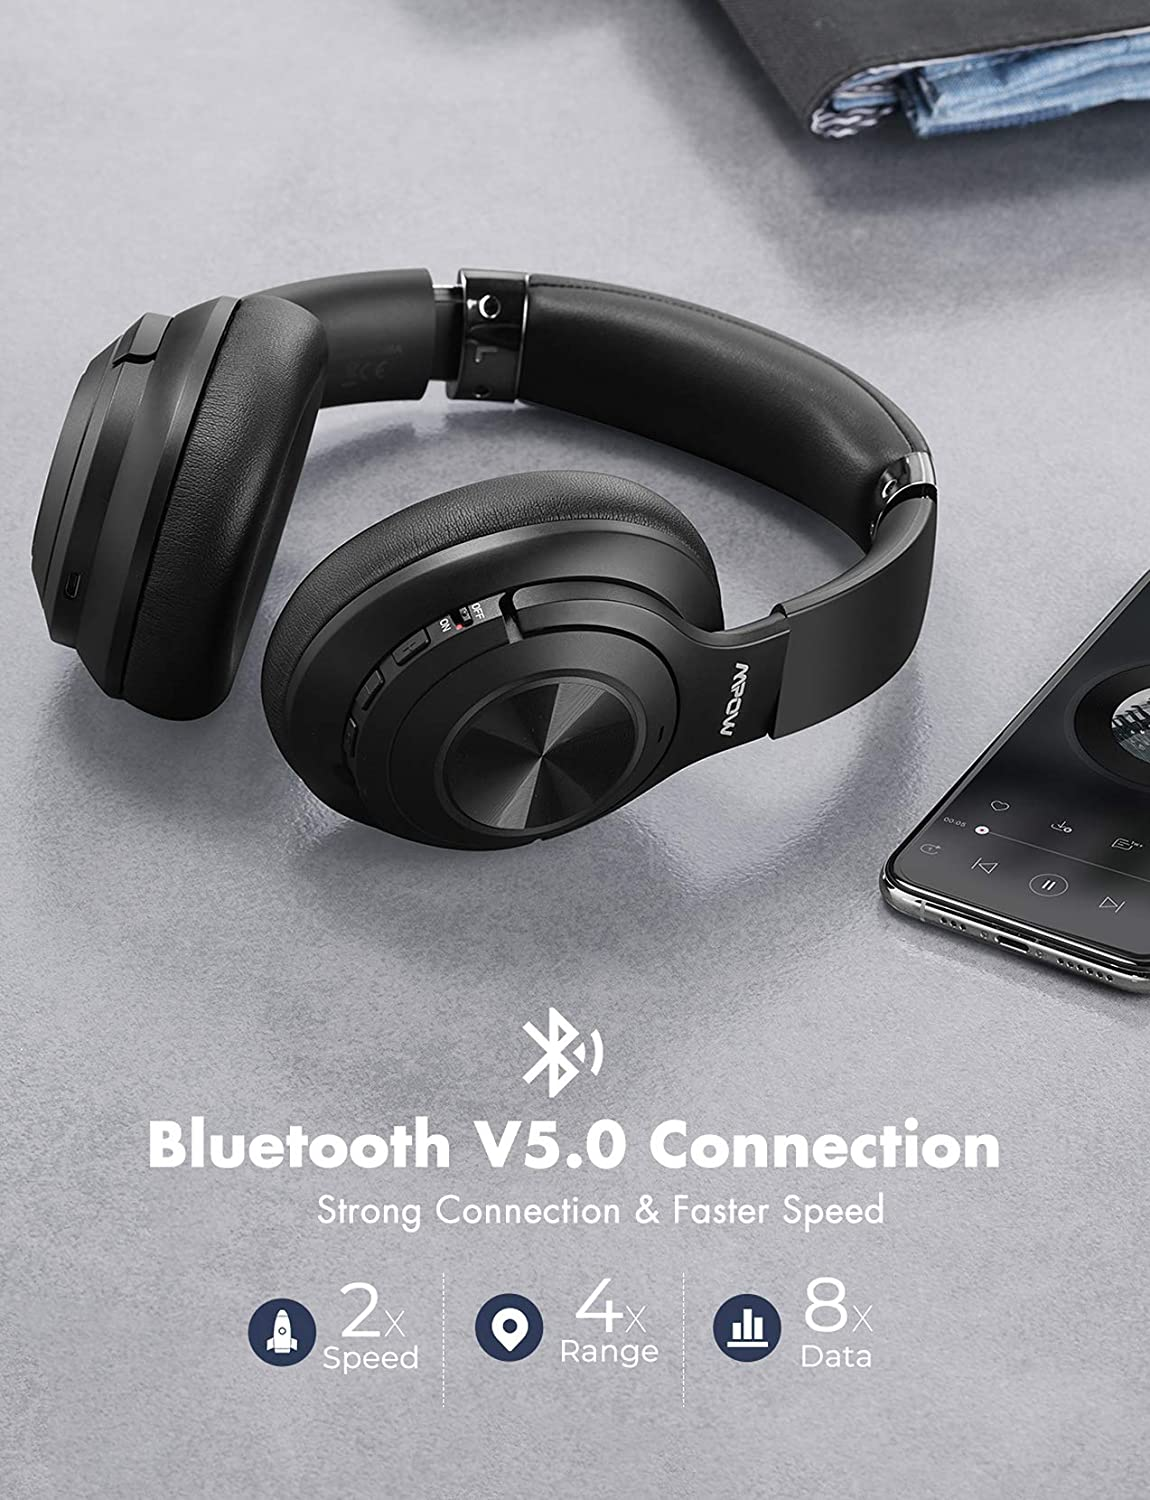 Mpow H21 Hybrid Noise Cancelling Headphones, 65H Playtime Wireless Headphones, Built-in Mic, Bluetooth 5.0, HD Stereo Sound, Wired Wireless Headset for Travel, Online Class, Home Office, TV